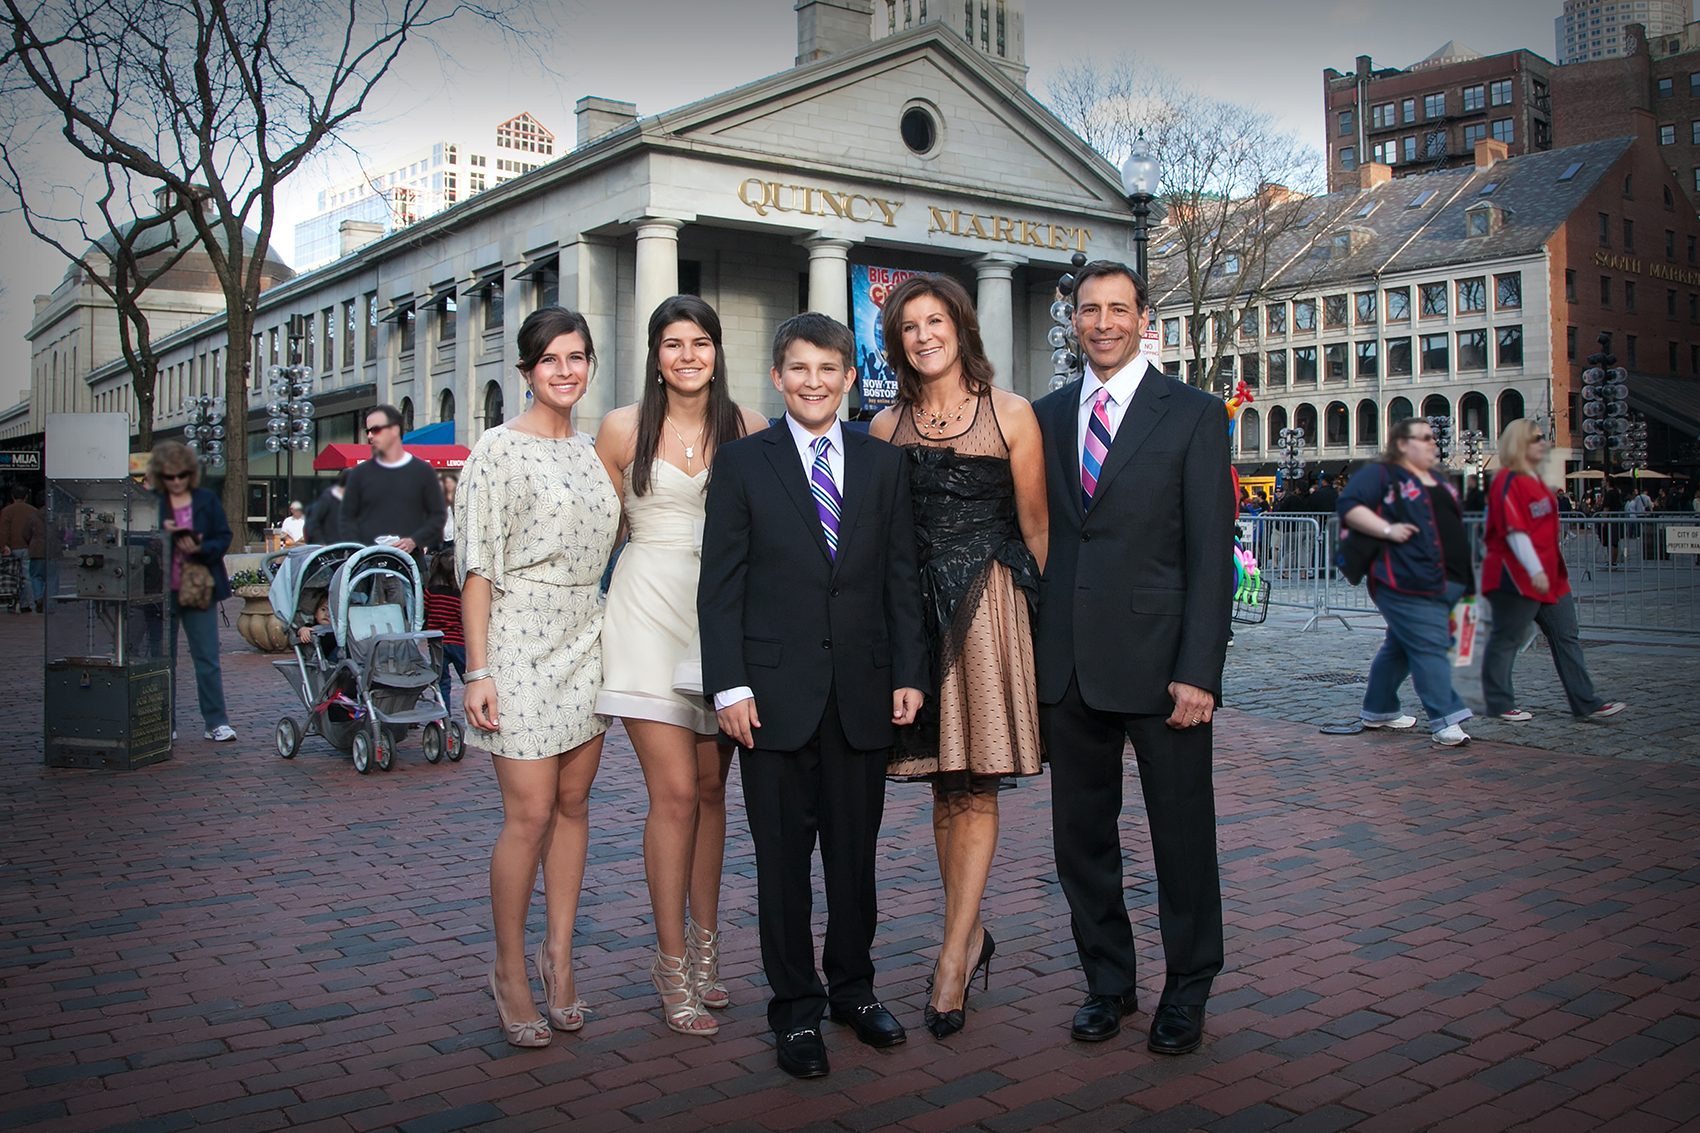 Family Portrait at Faneuil Hall Boston MA.